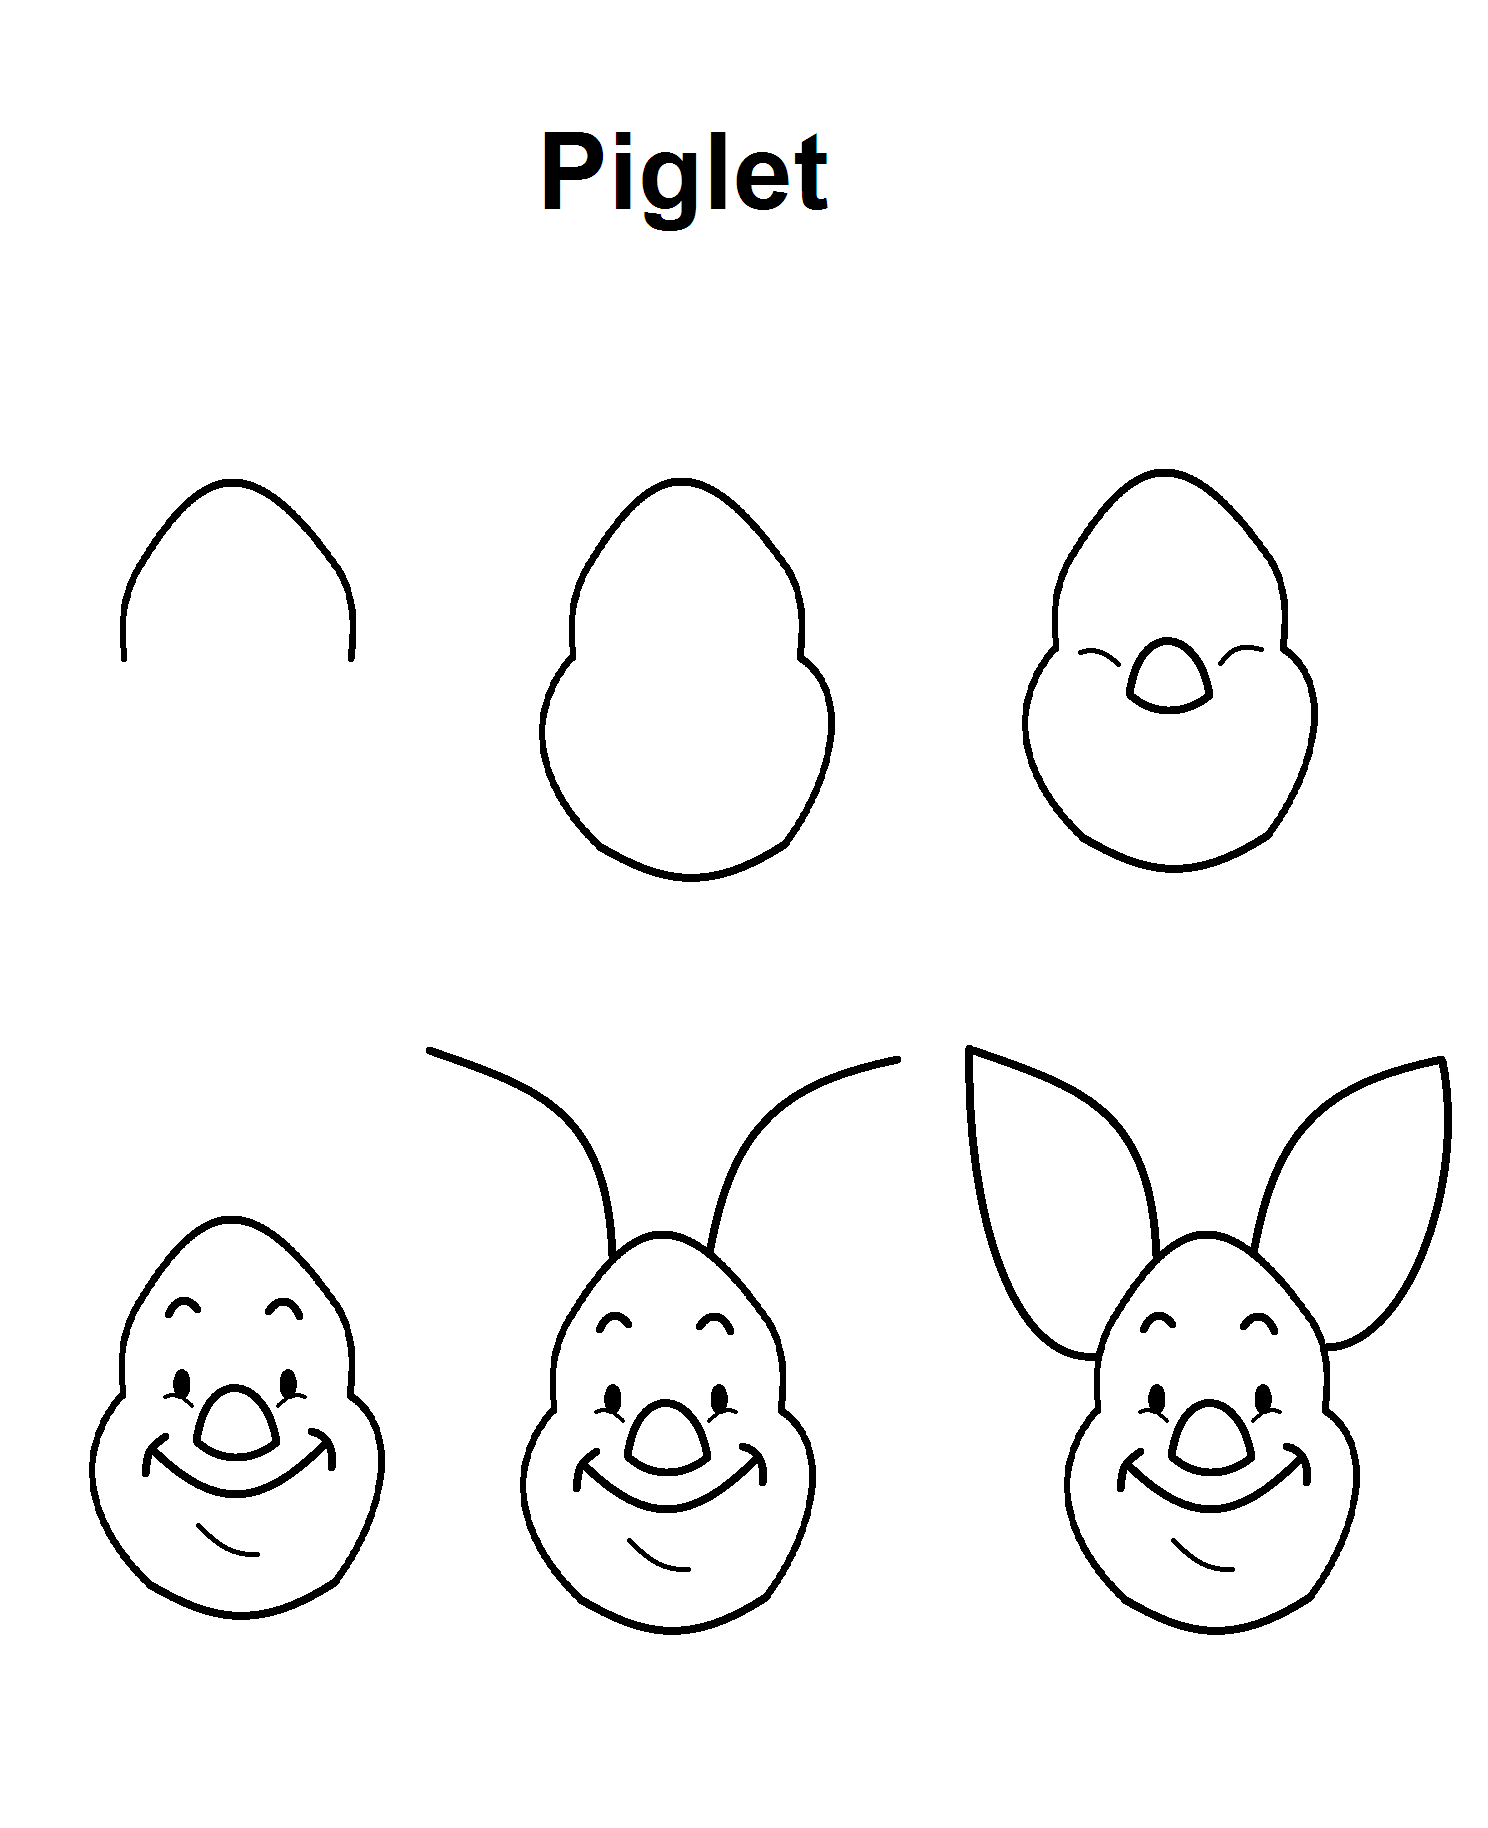 Piglet Step By Step Drawing Tutorial Easy Disney Drawings Easy